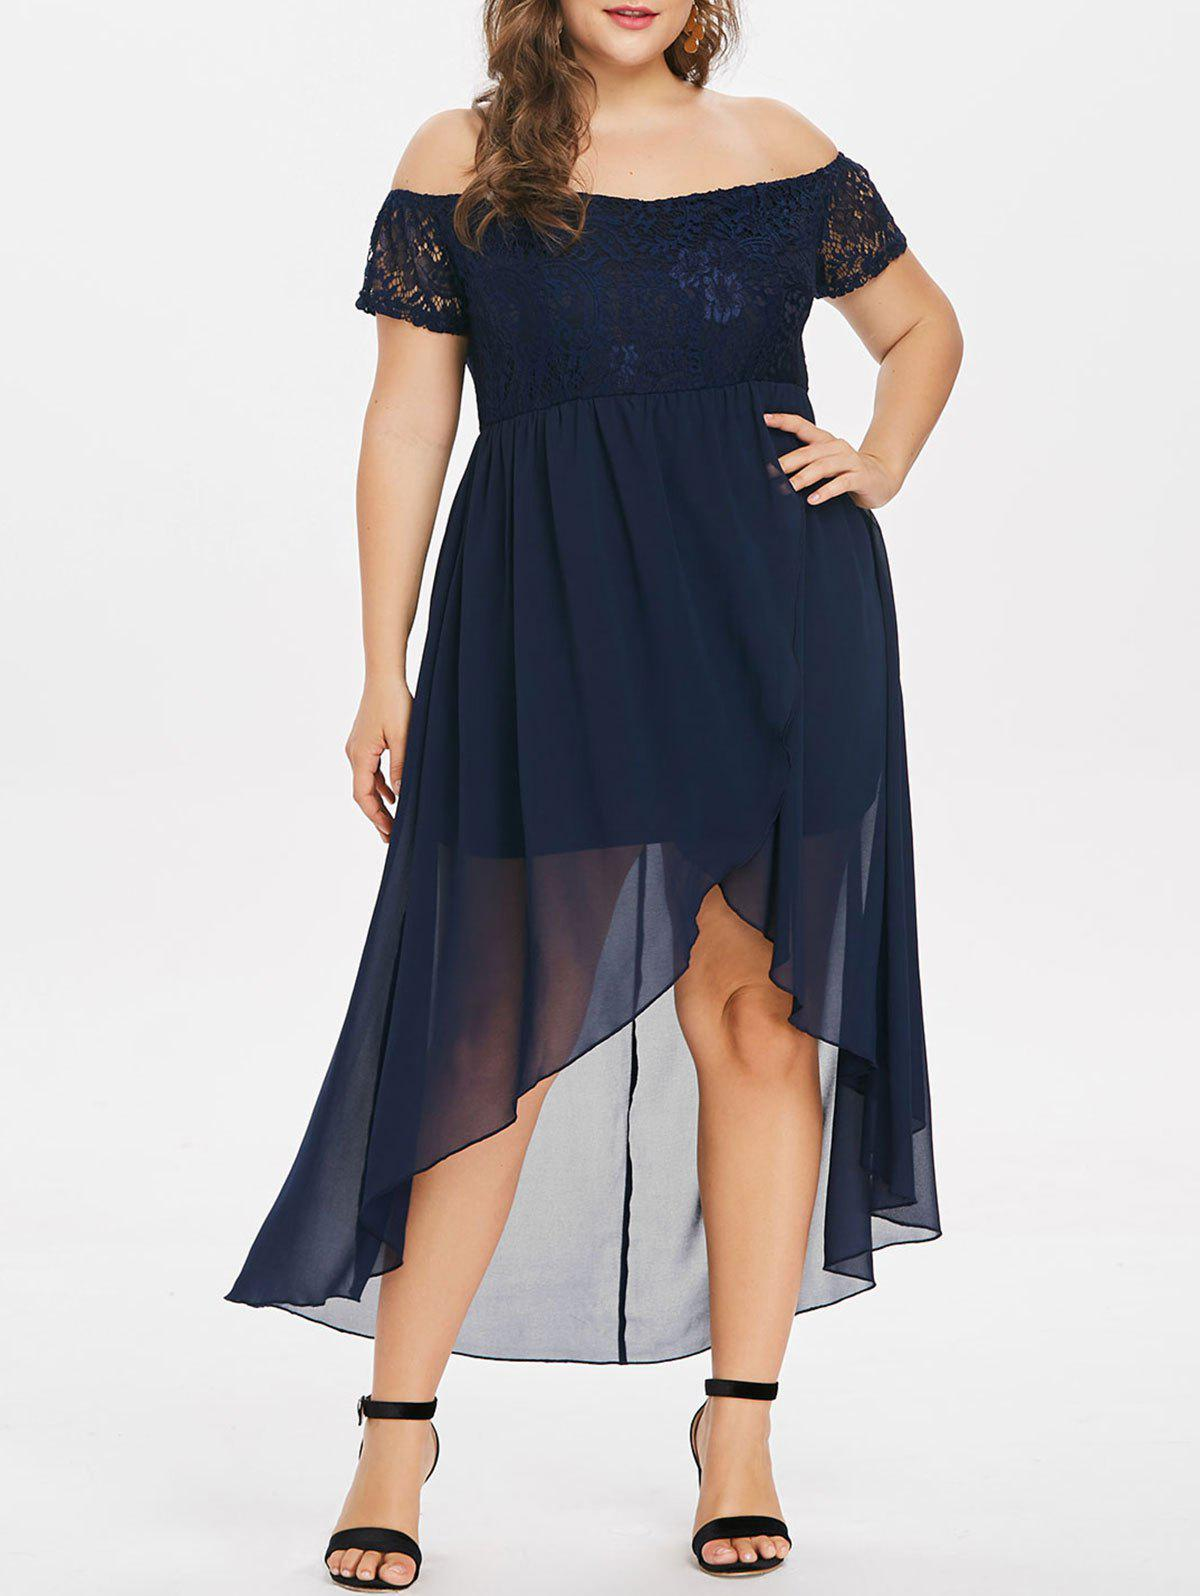 Chic Front Slit Lace Insert Plus Size High Low Dress